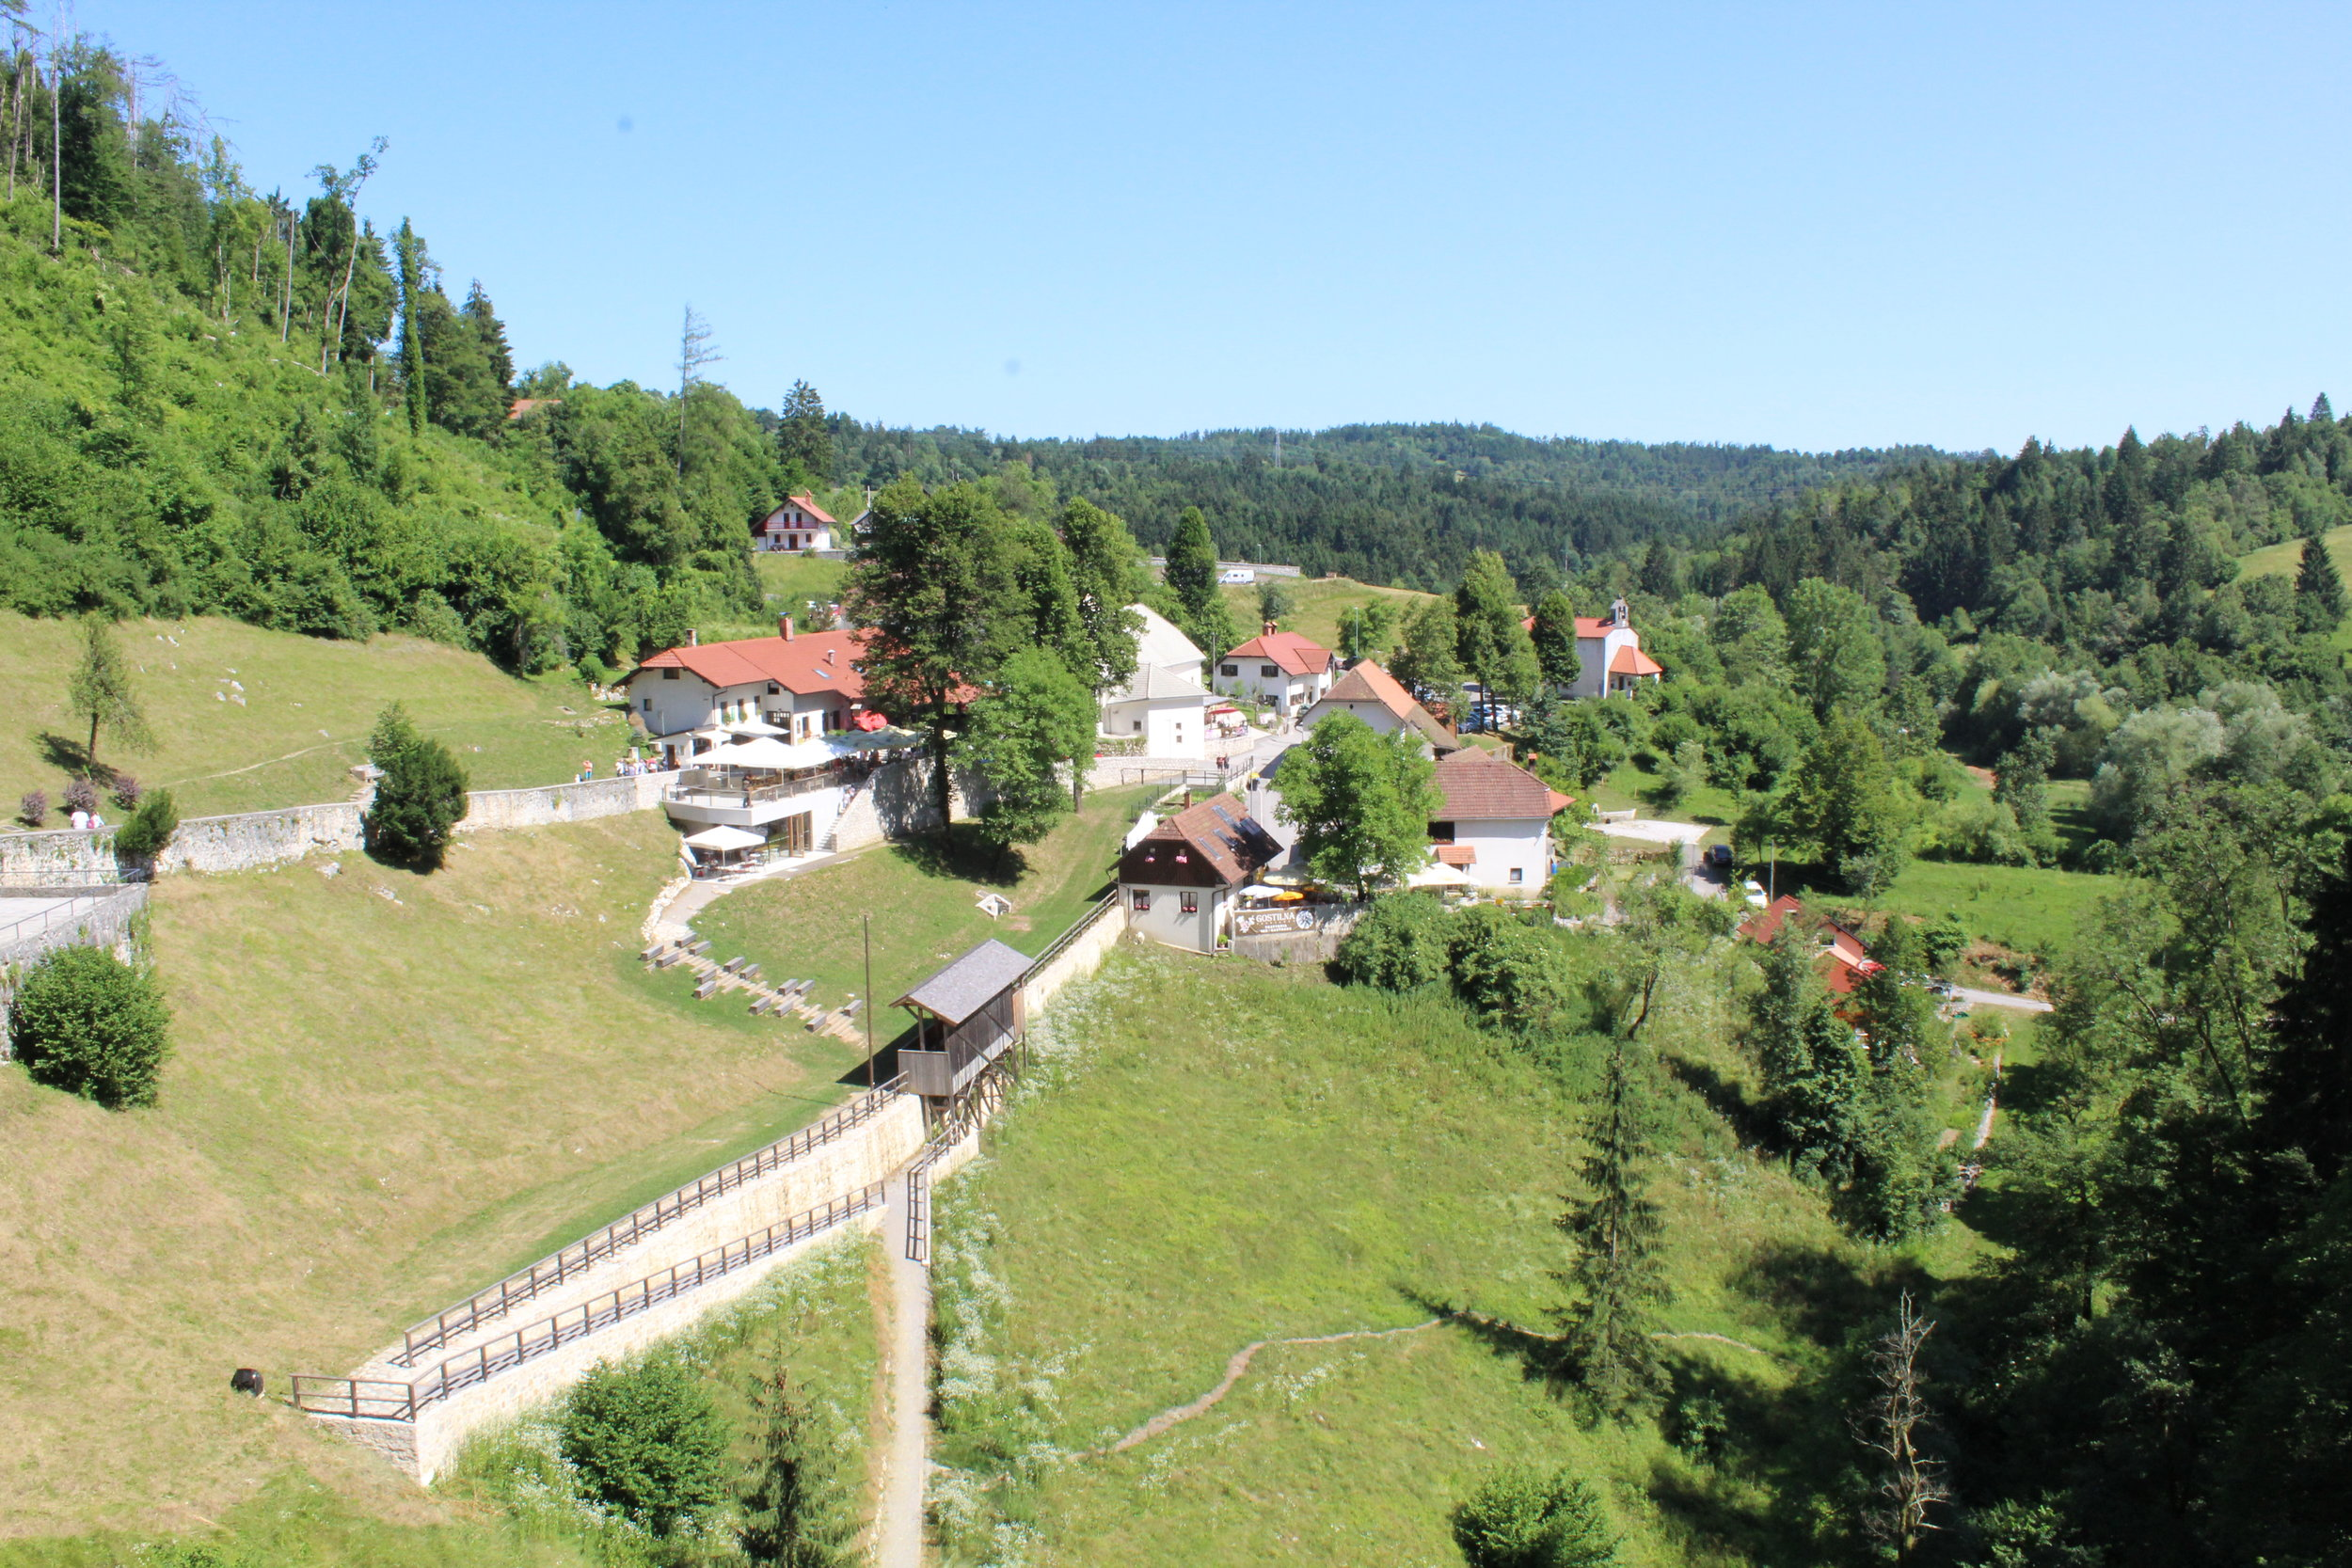 Picture of the surrounding town from inside the castle